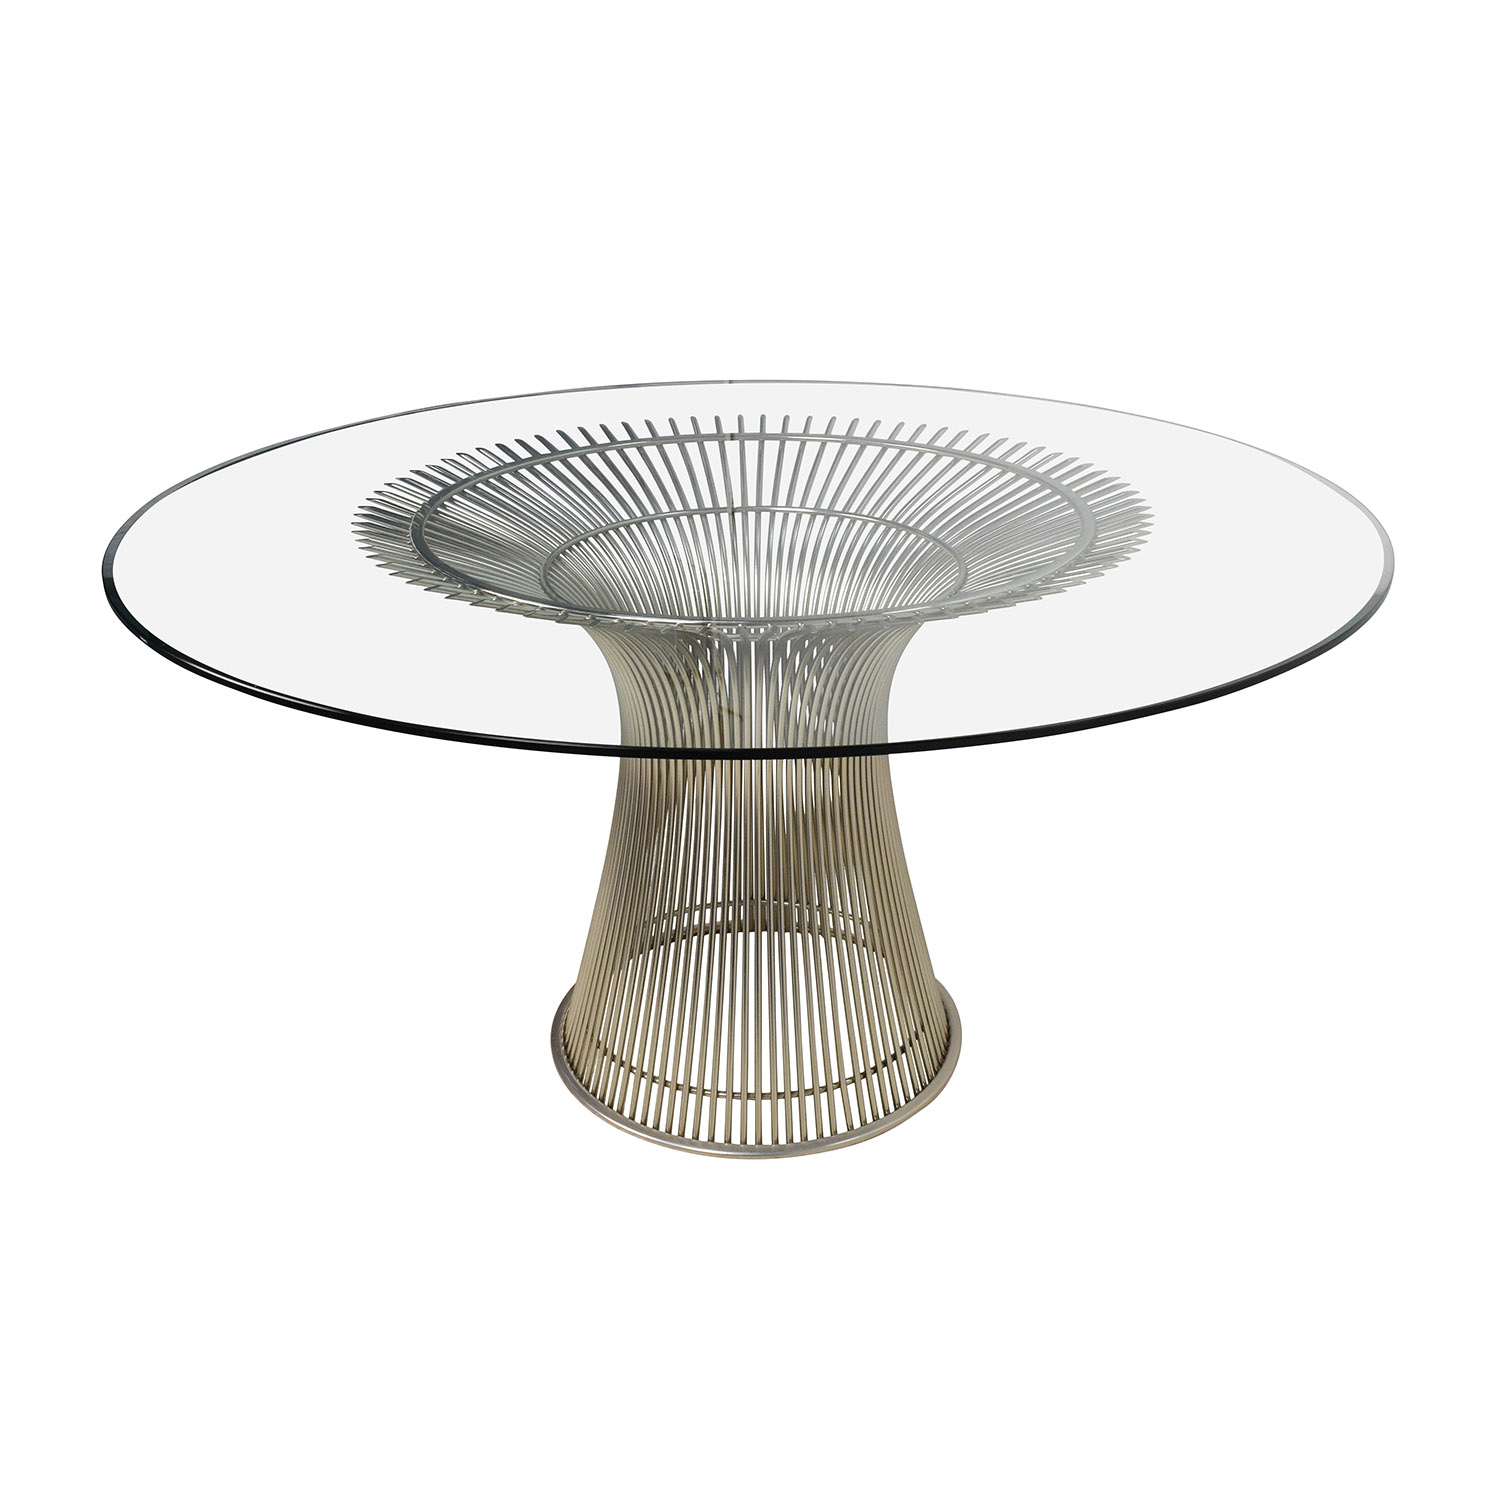 cabinet dimensions 51 design within reach design within reach platner 12805